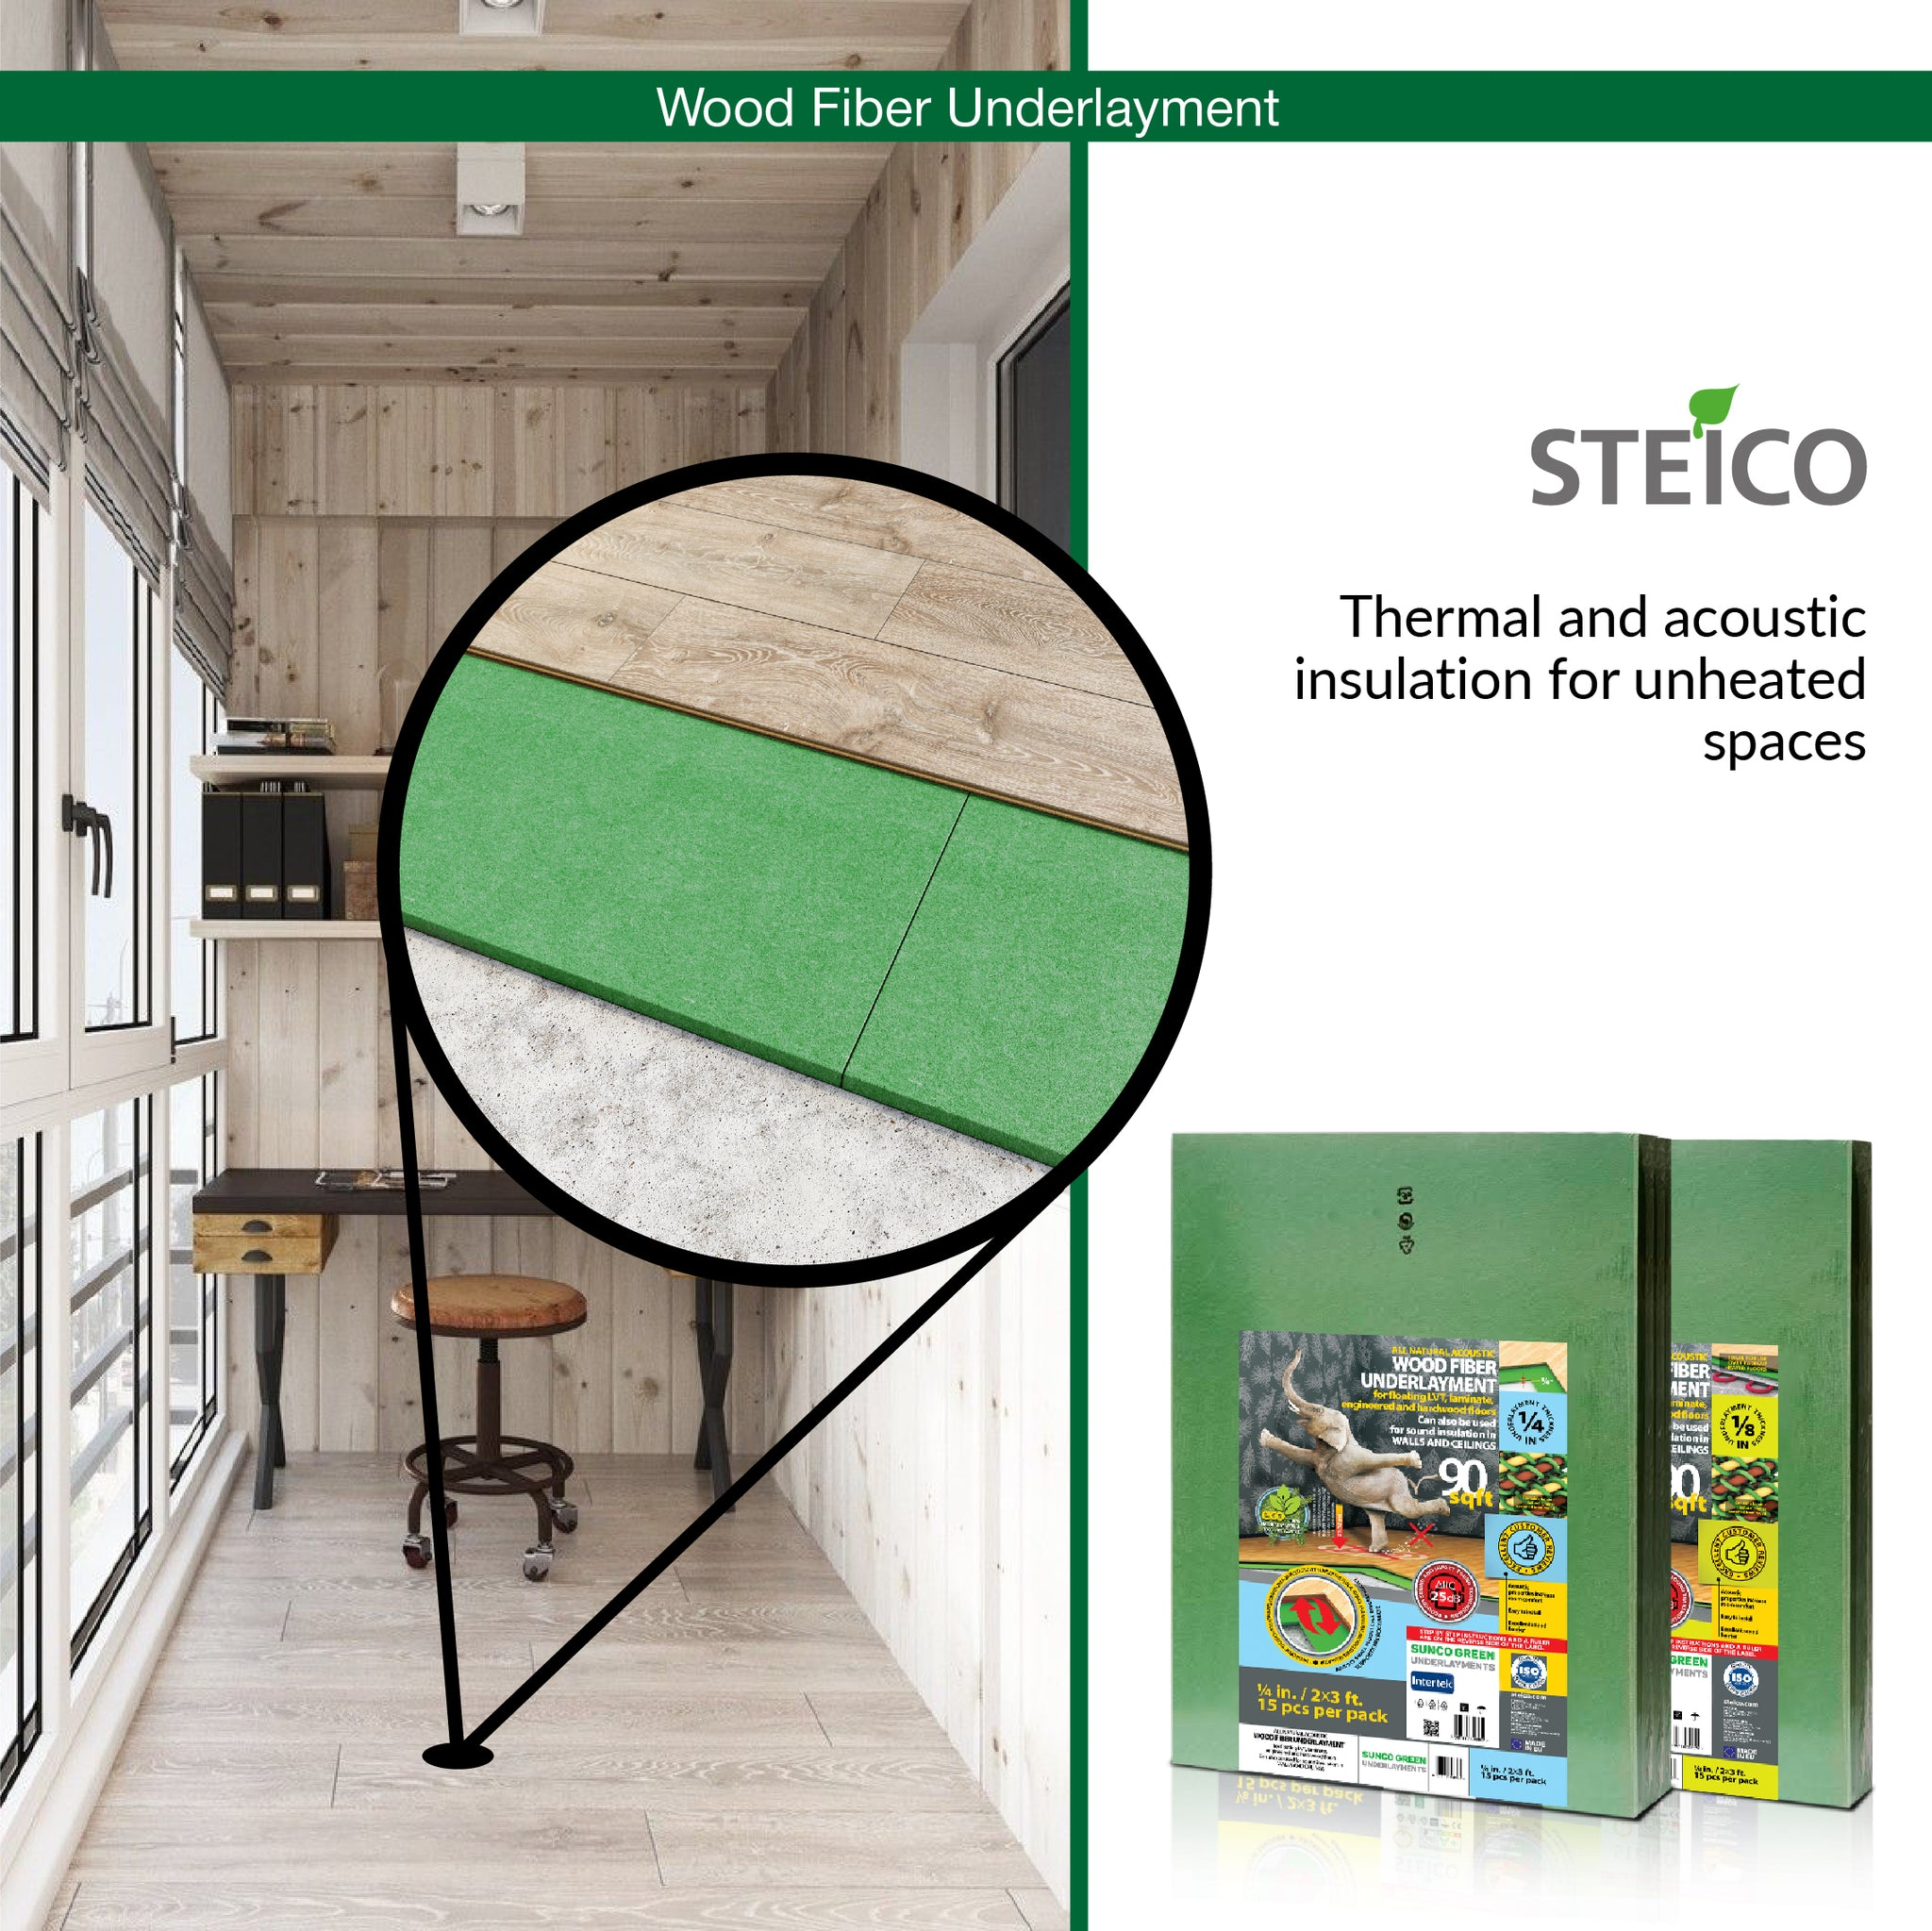 "STEICO WOOD FIBER UNDERLAYMENT 6 mm 1/4"" 2,160 SqFt"